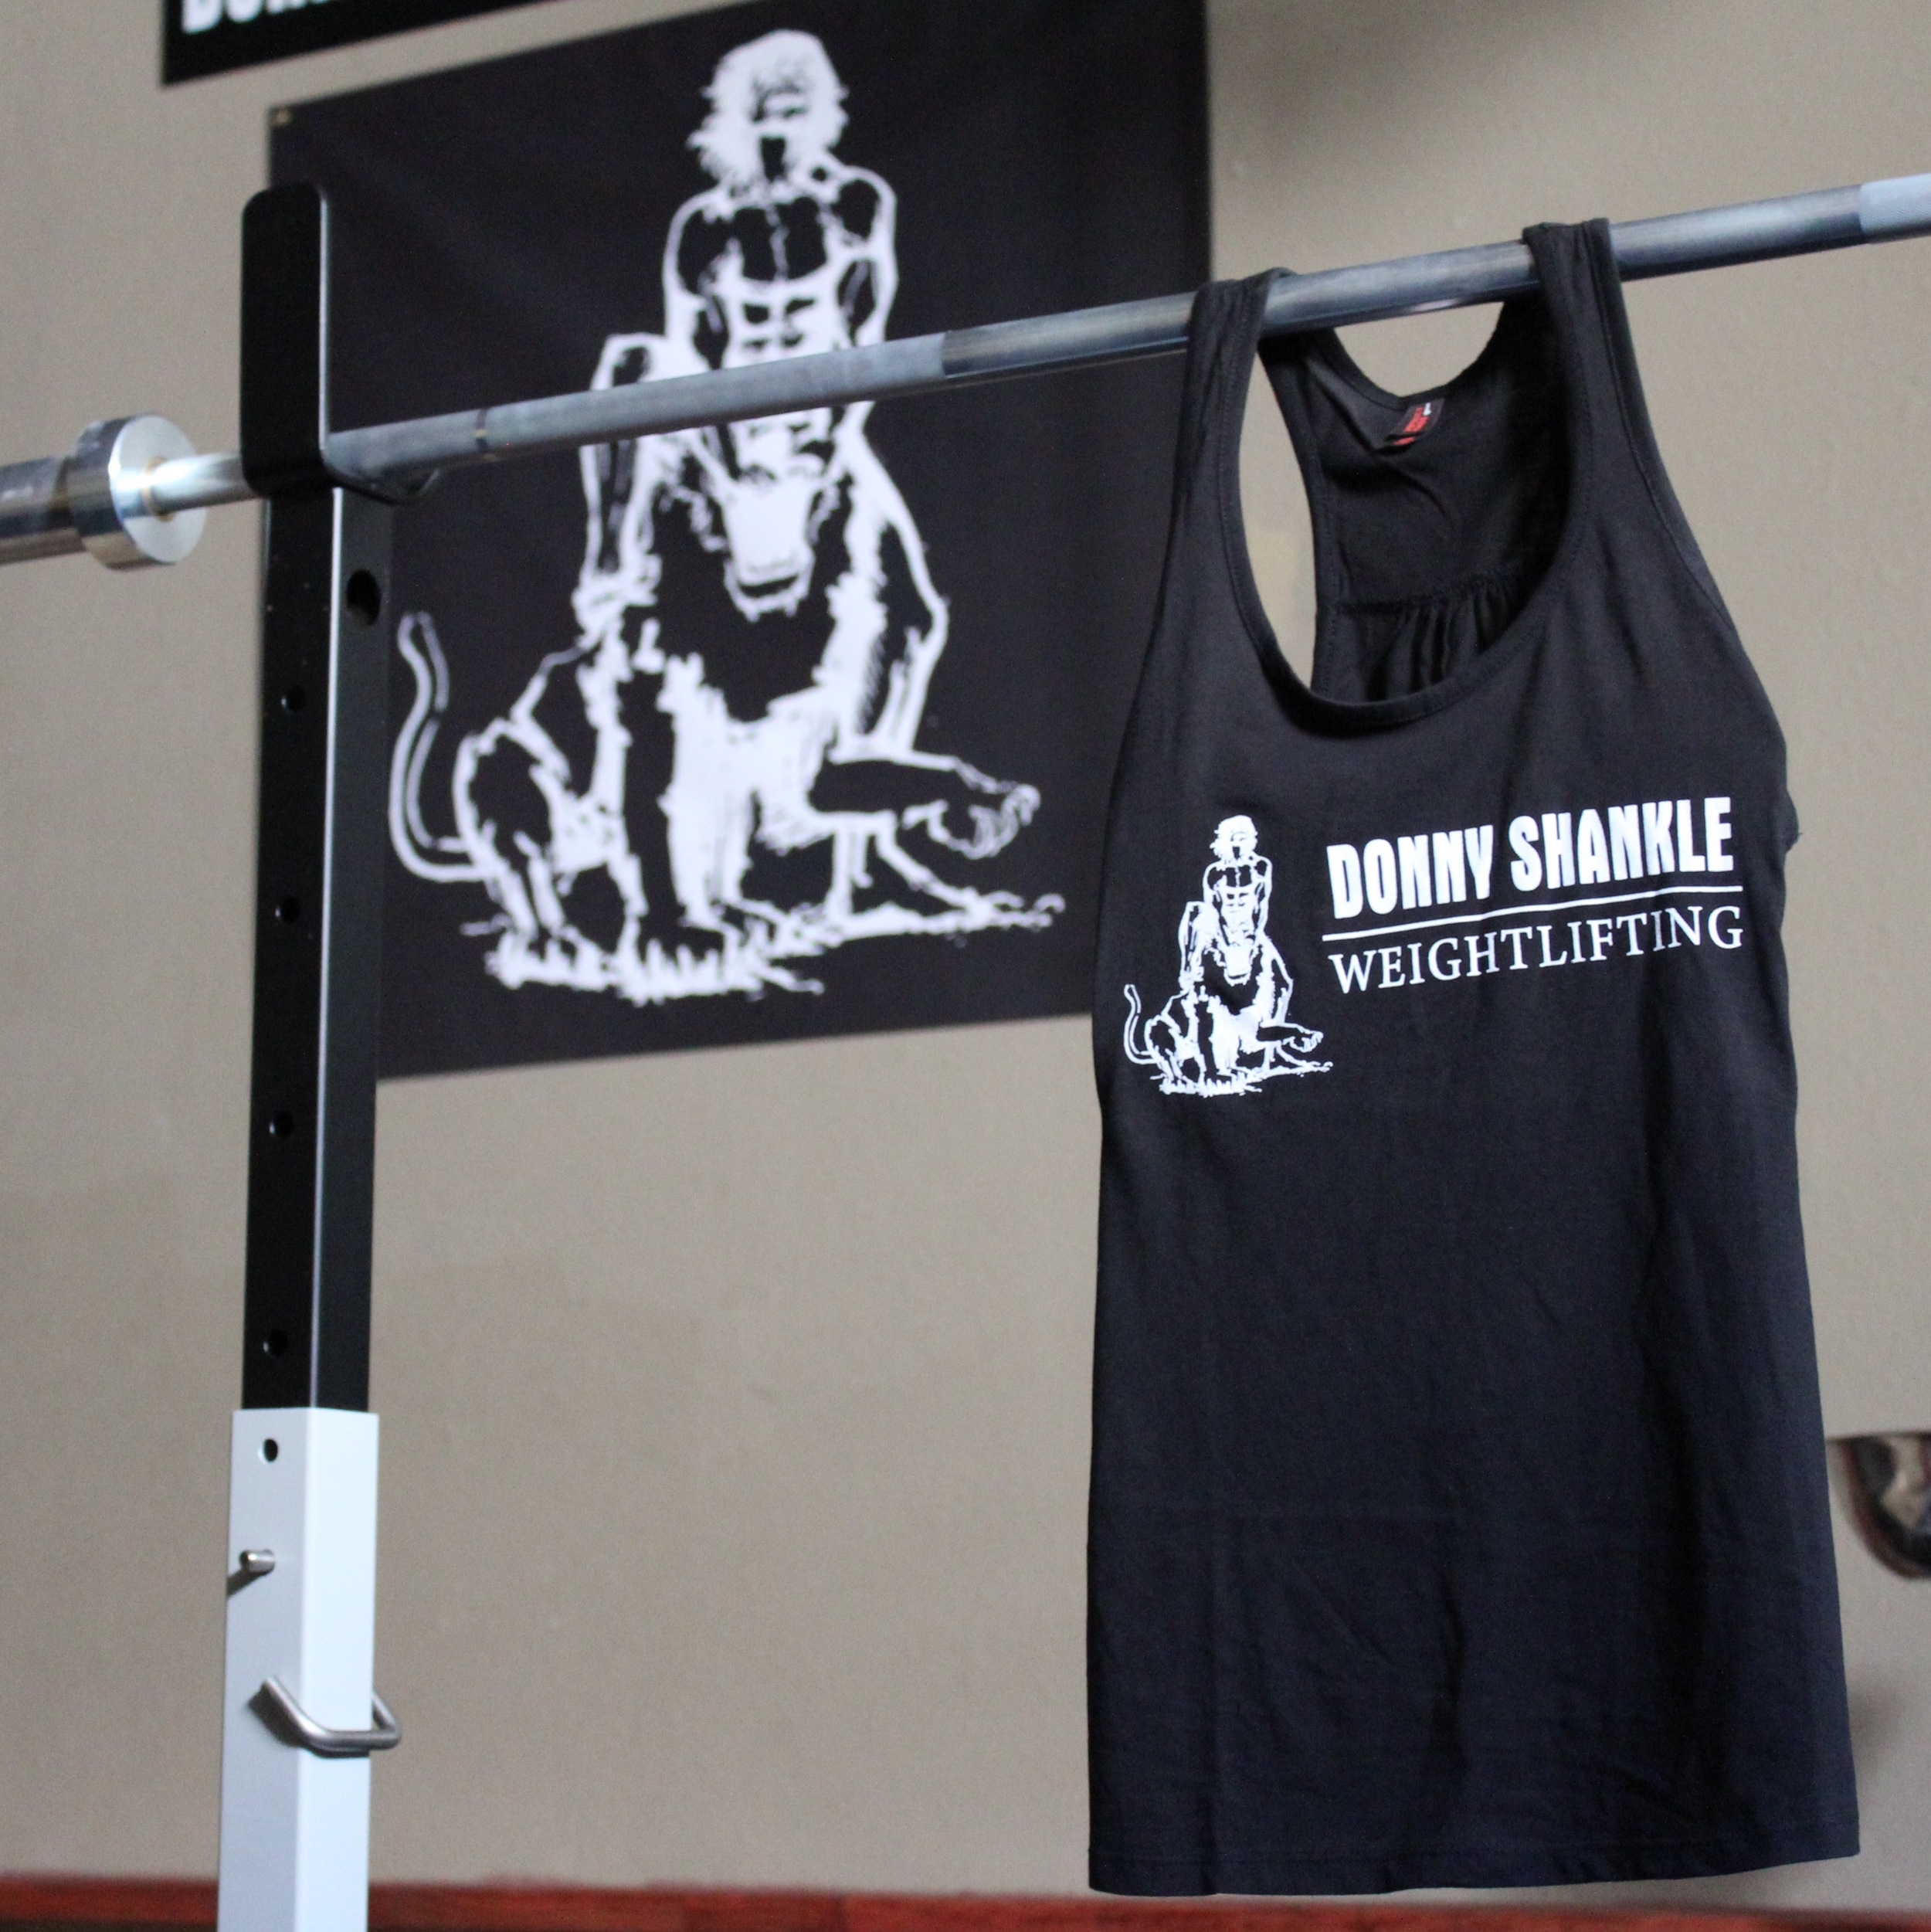 donny shankle weightlifting womens tanks